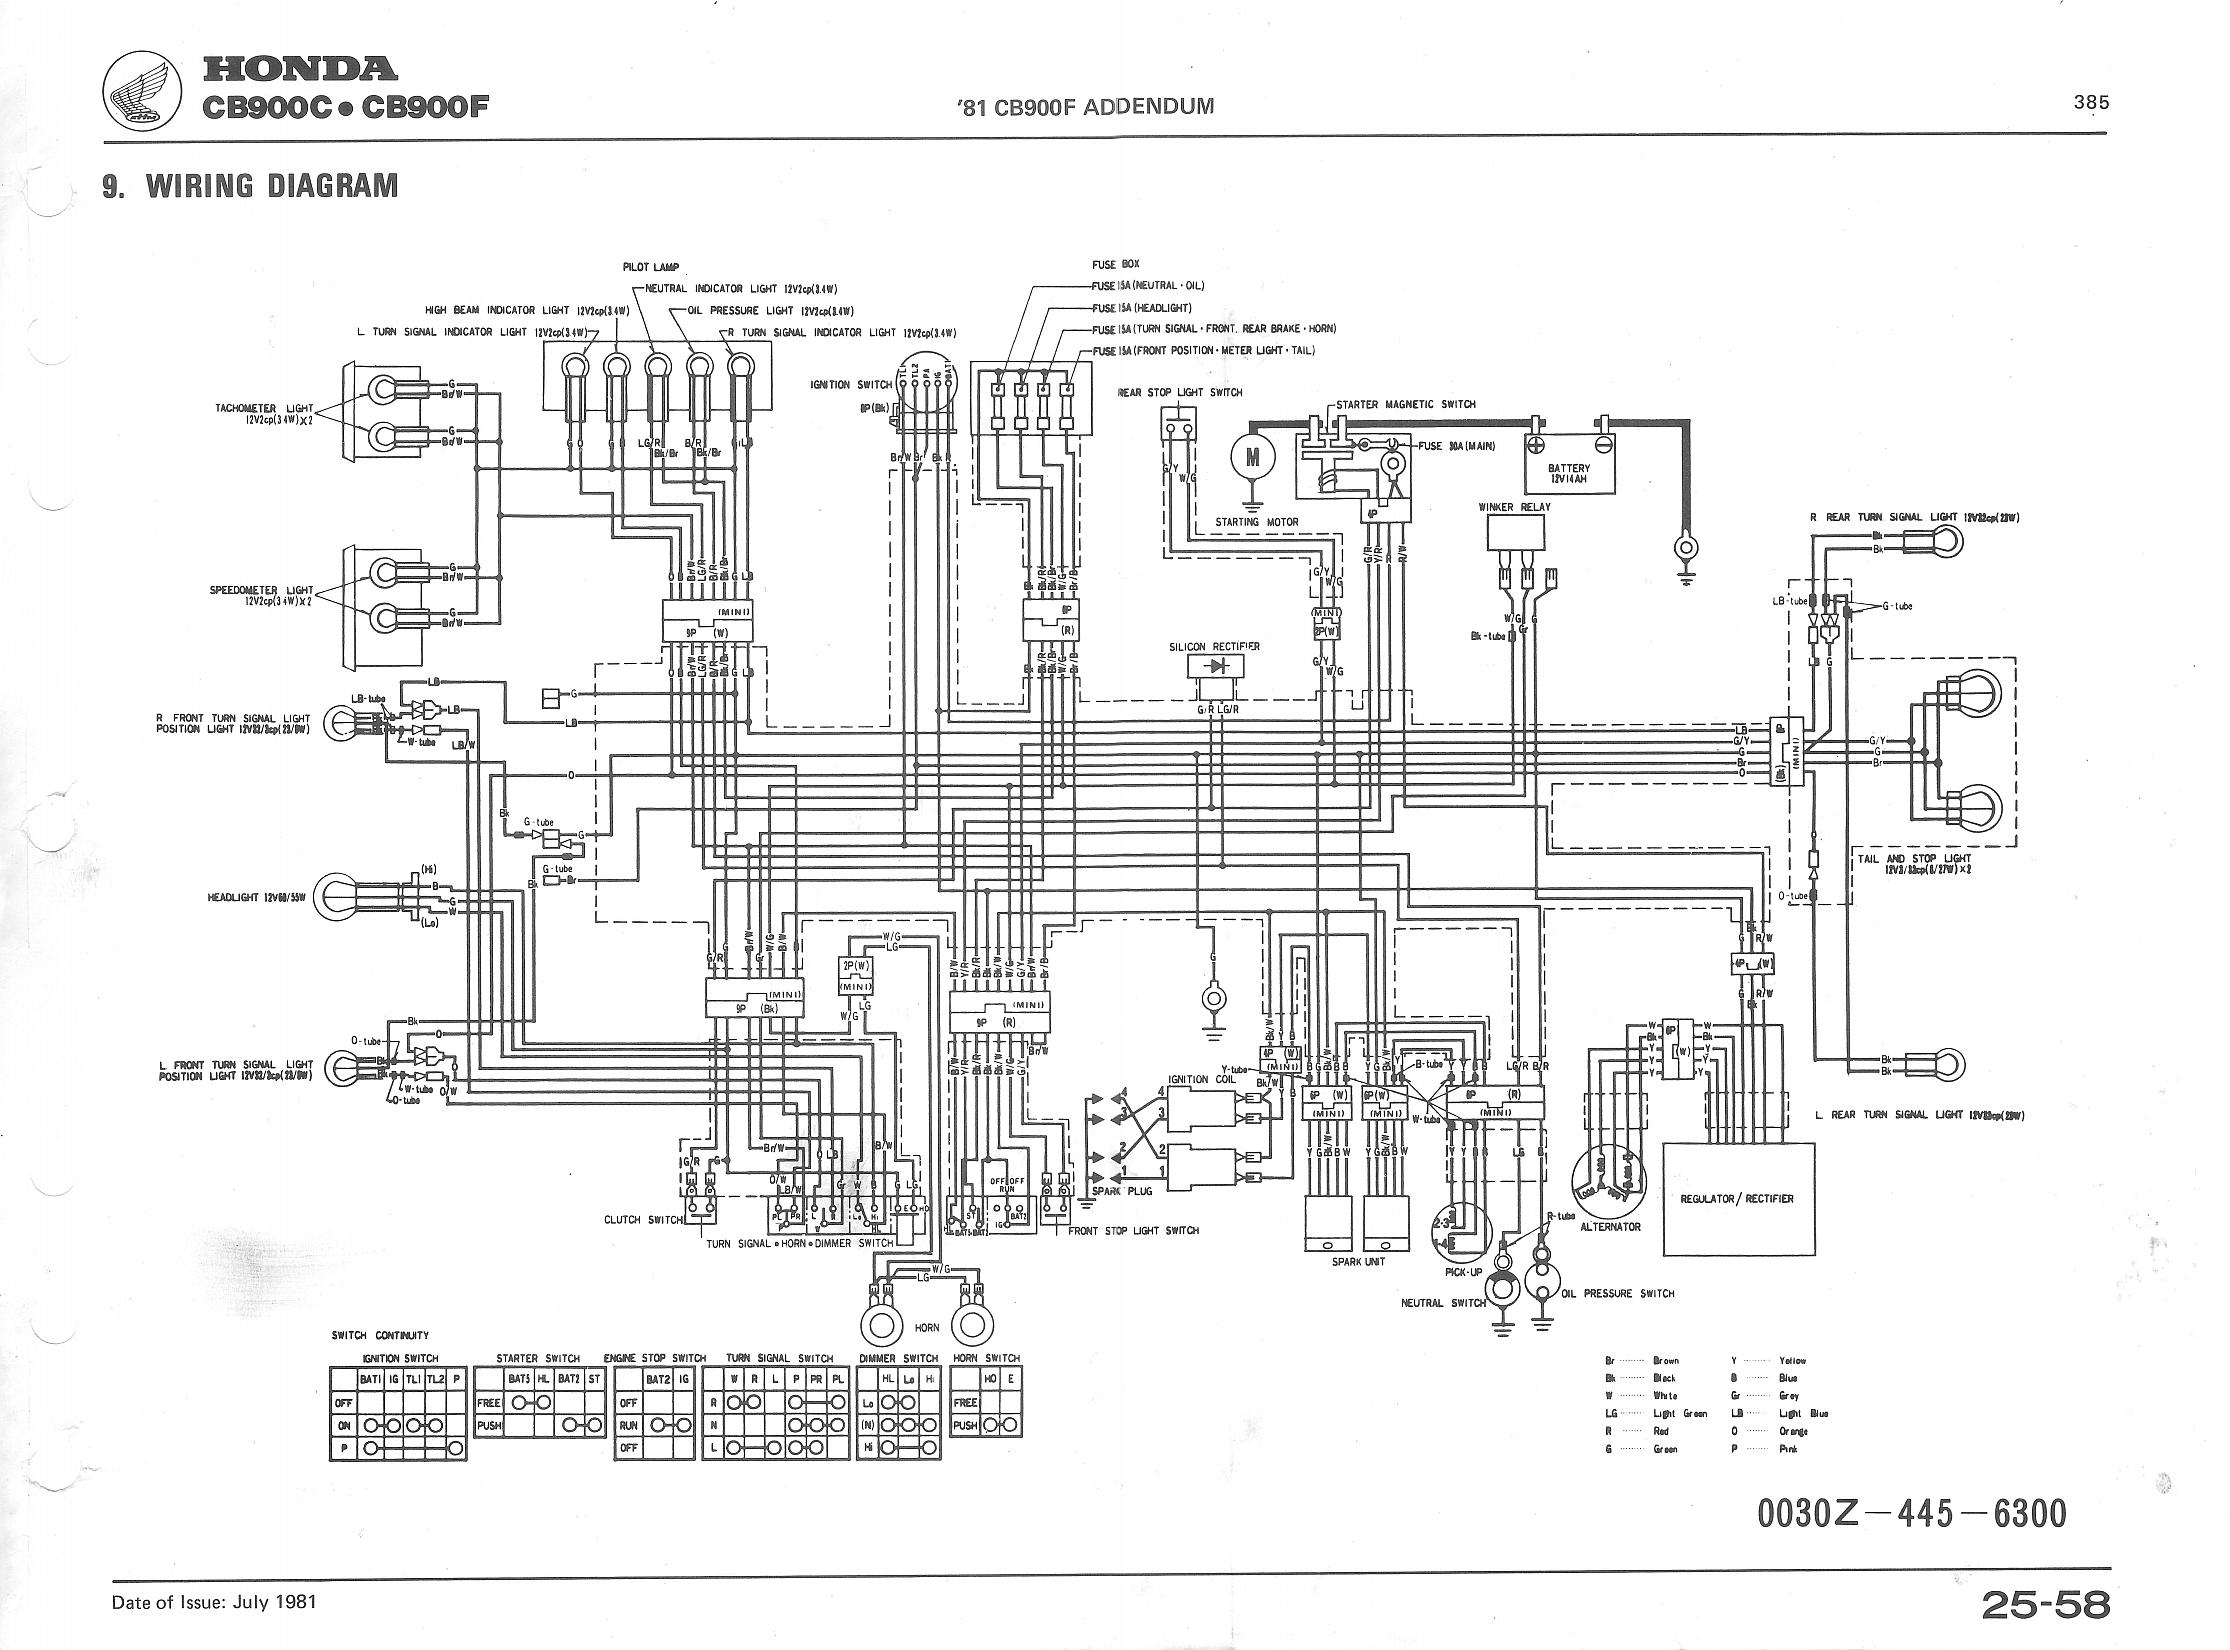 cb750 93 wiring diagram - 220 volt motor wiring diagram 12 lead for wiring  diagram schematics  wiring diagram schematics